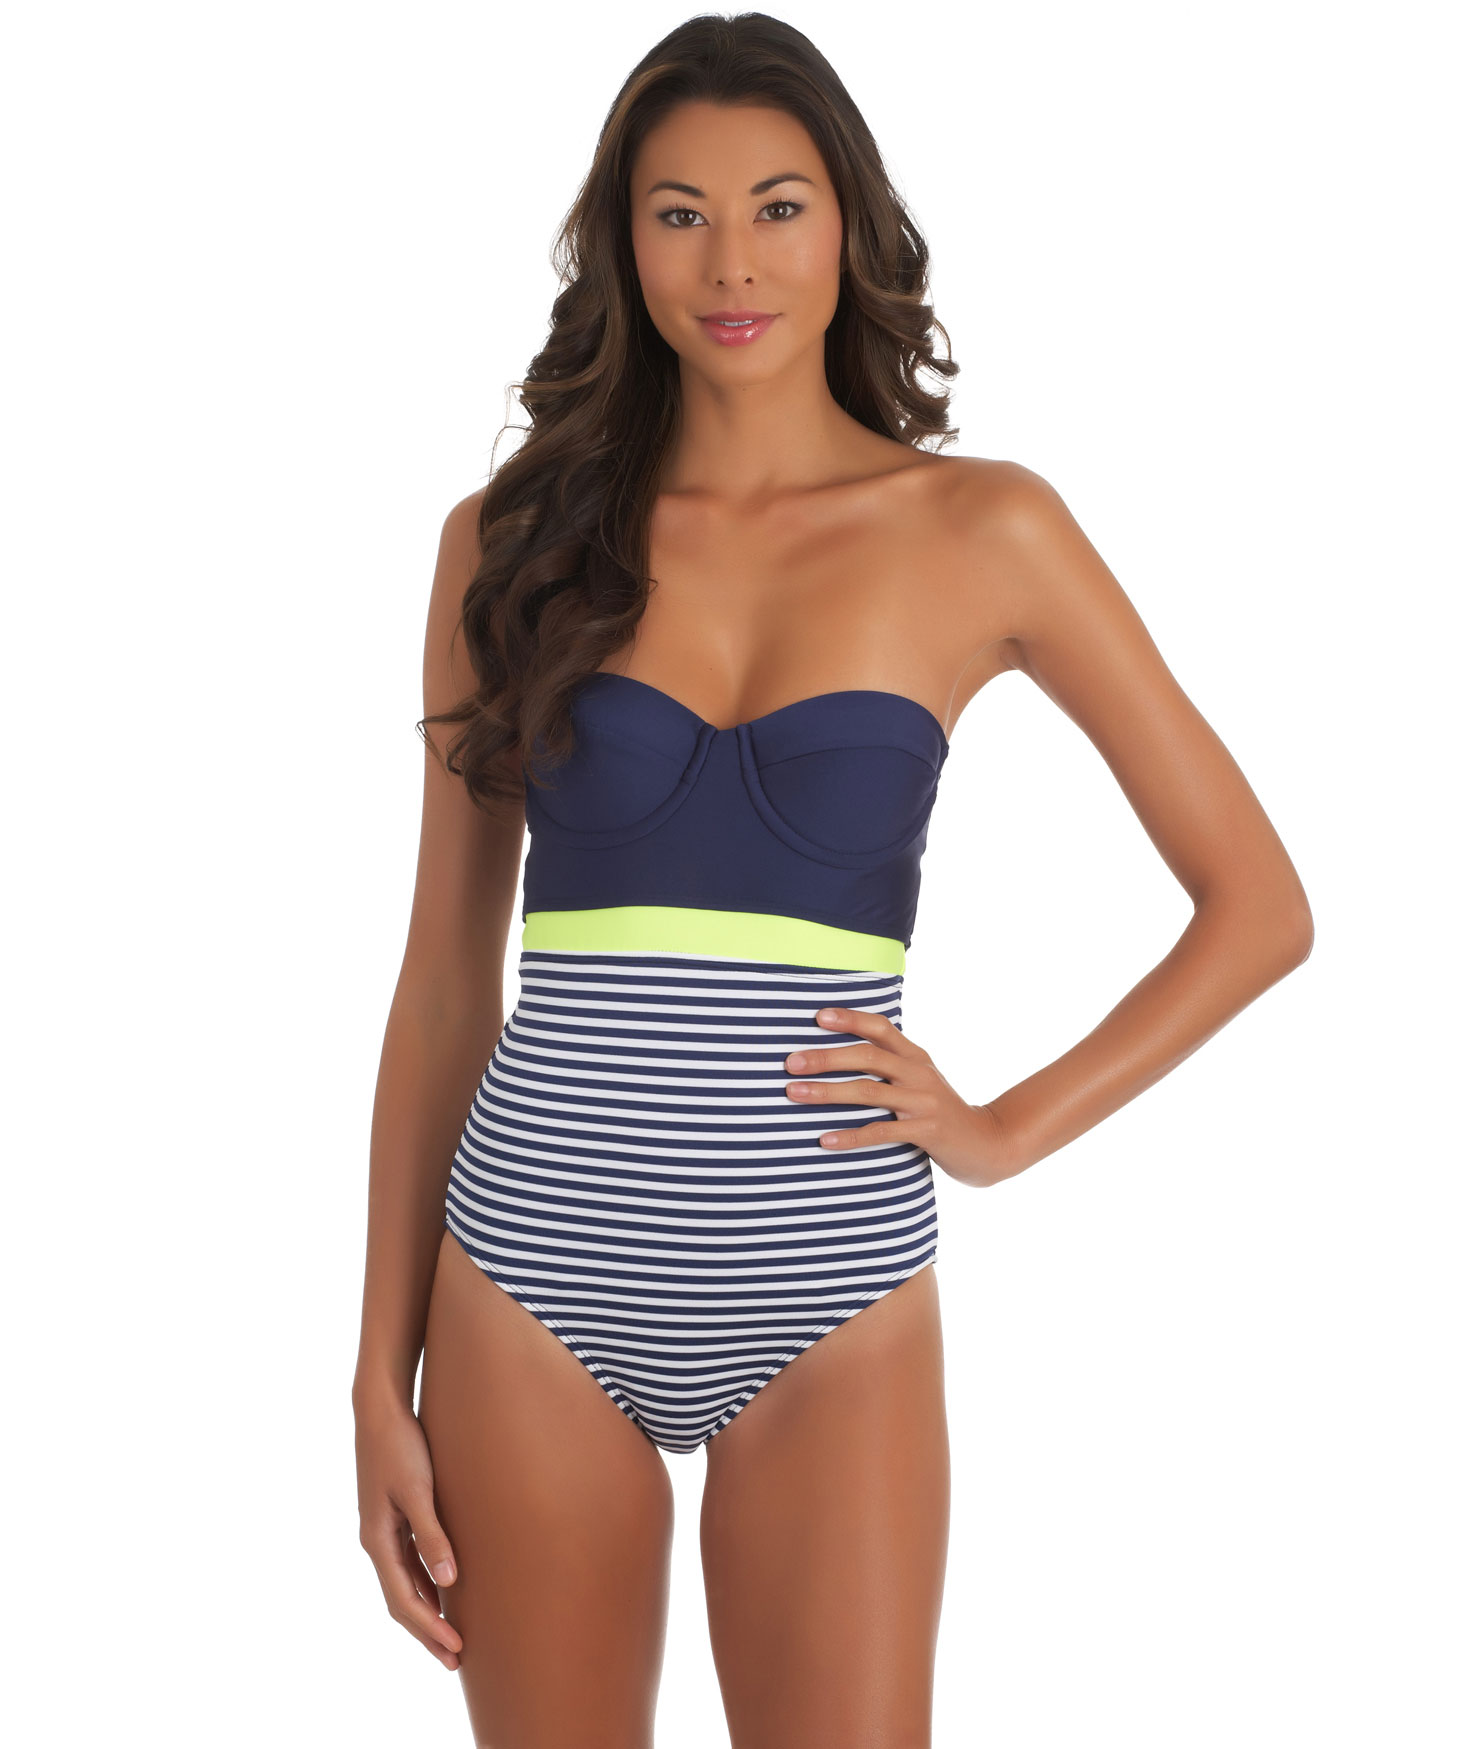 Sunbathe & swim in style with our sexy bathing suits at tokosepatu.ga Browse our selection of unique one piece bathing suits and bikinis here.